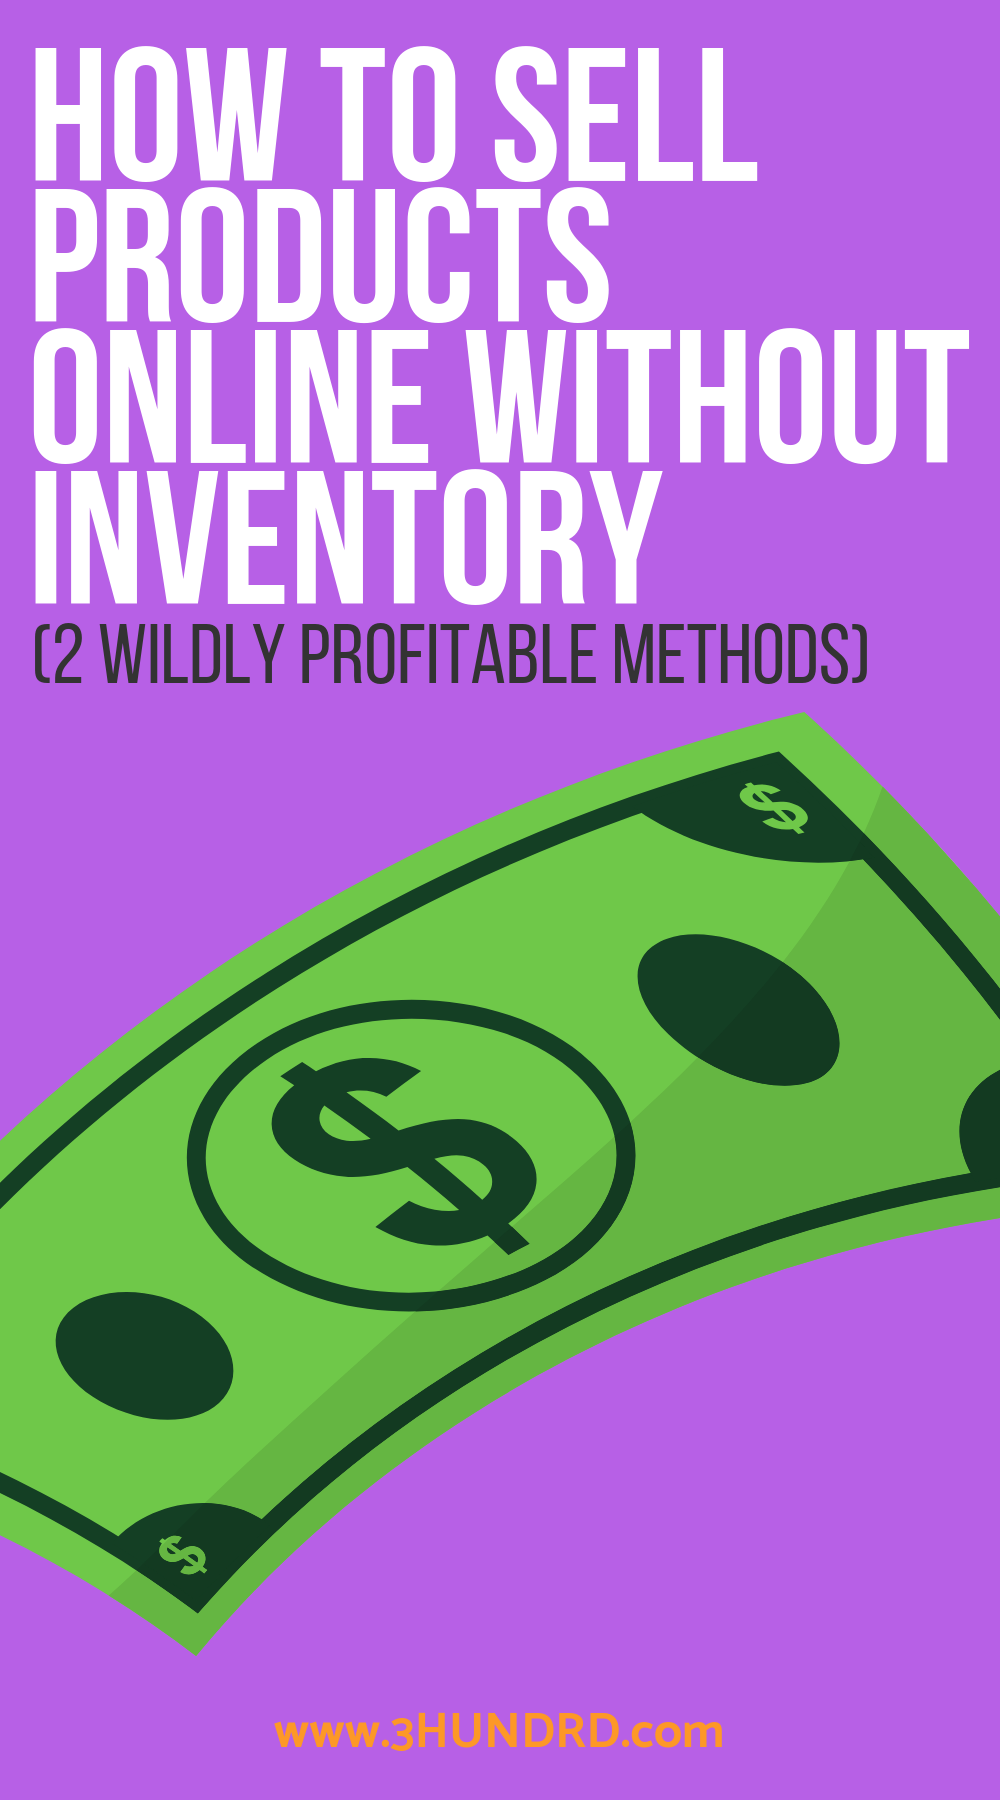 How To Sell Products Online Without Inventory (2 Wildly